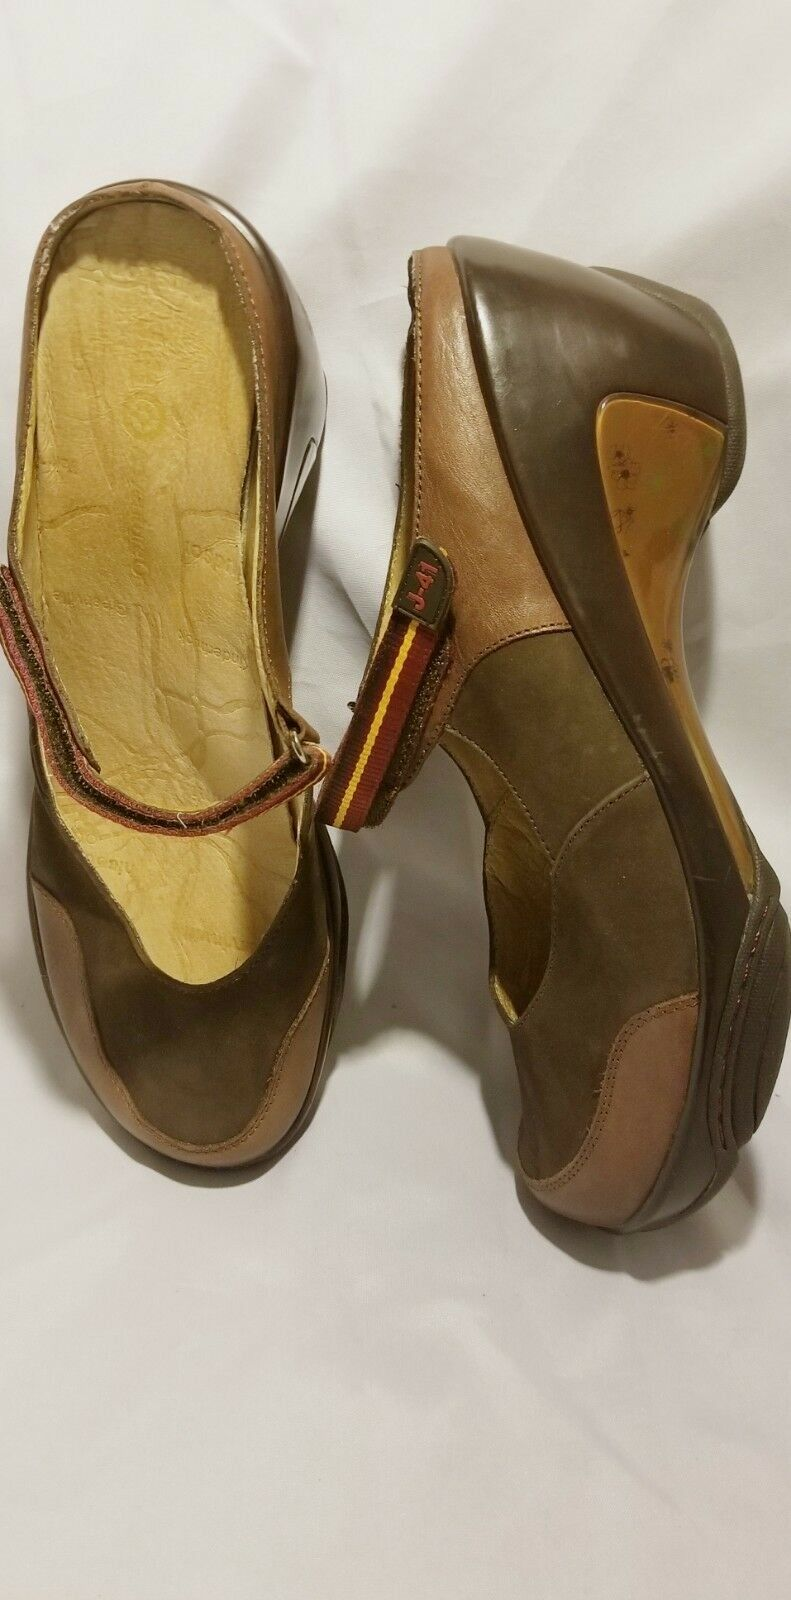 Sz 11, J-41 ADVENTURE ON Continental Brown Leather Mary Jane Wedge Mules